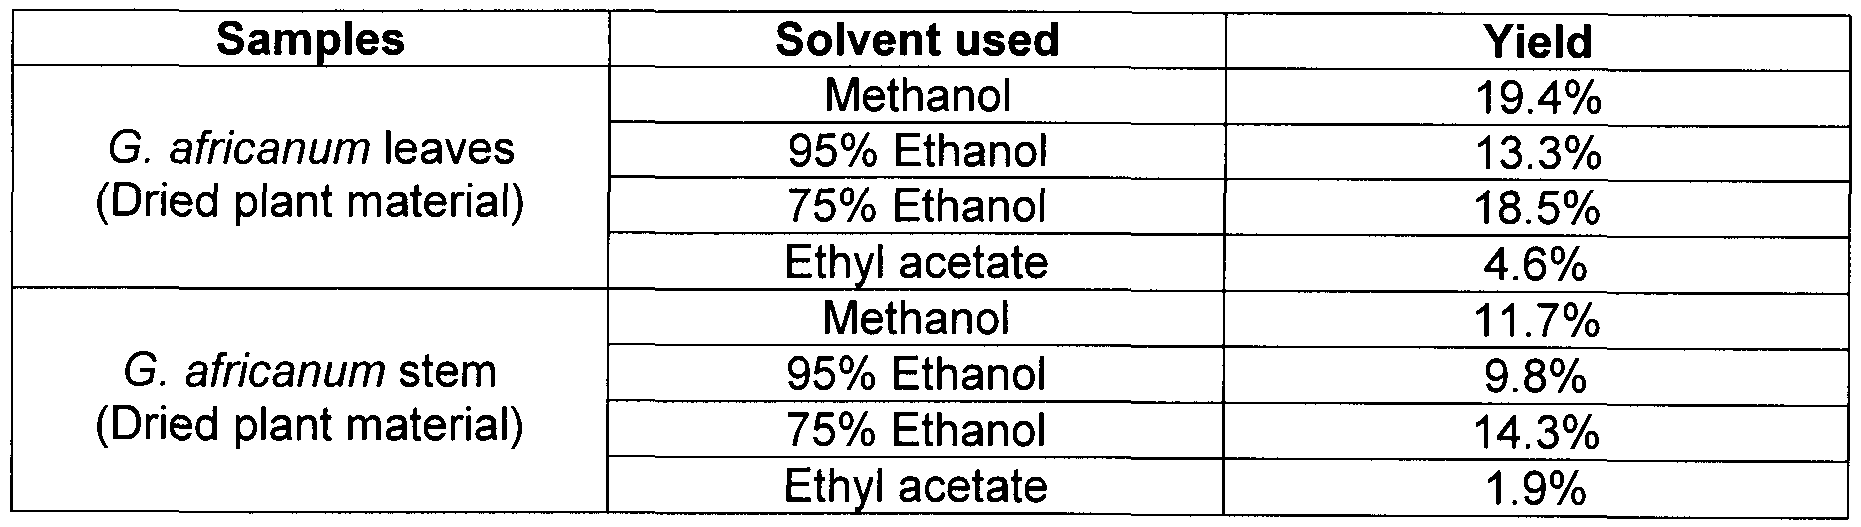 WO2012012886A1 - Compounds and extracts from gnetum